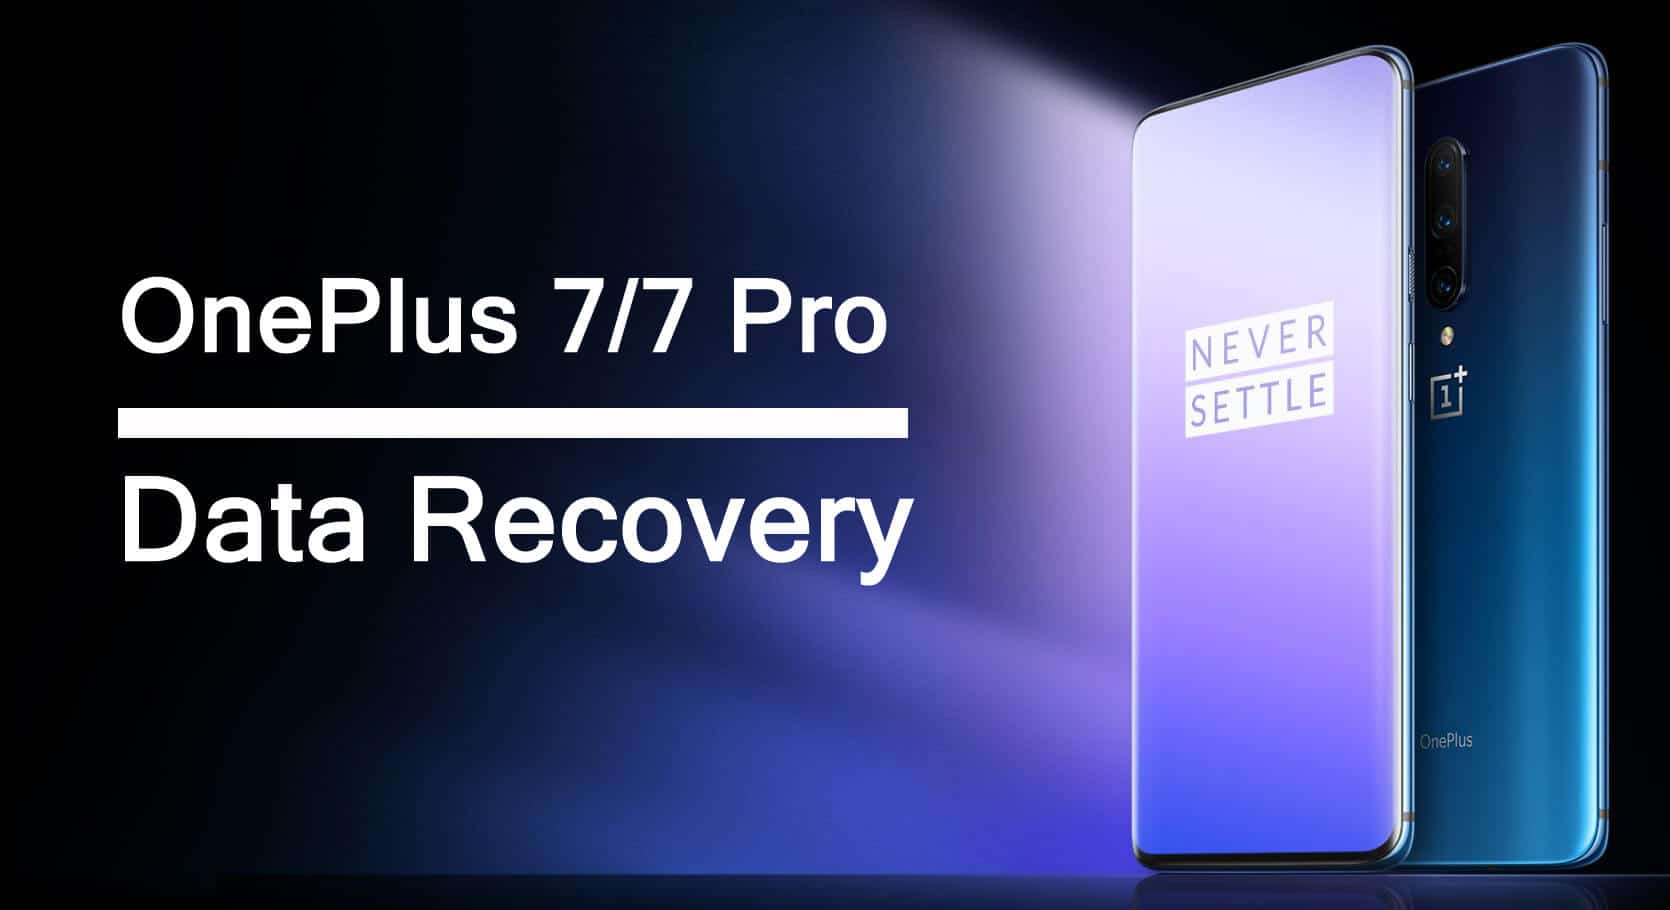 OnePlus 7 or OnePlus 7 Pro Data Recovery